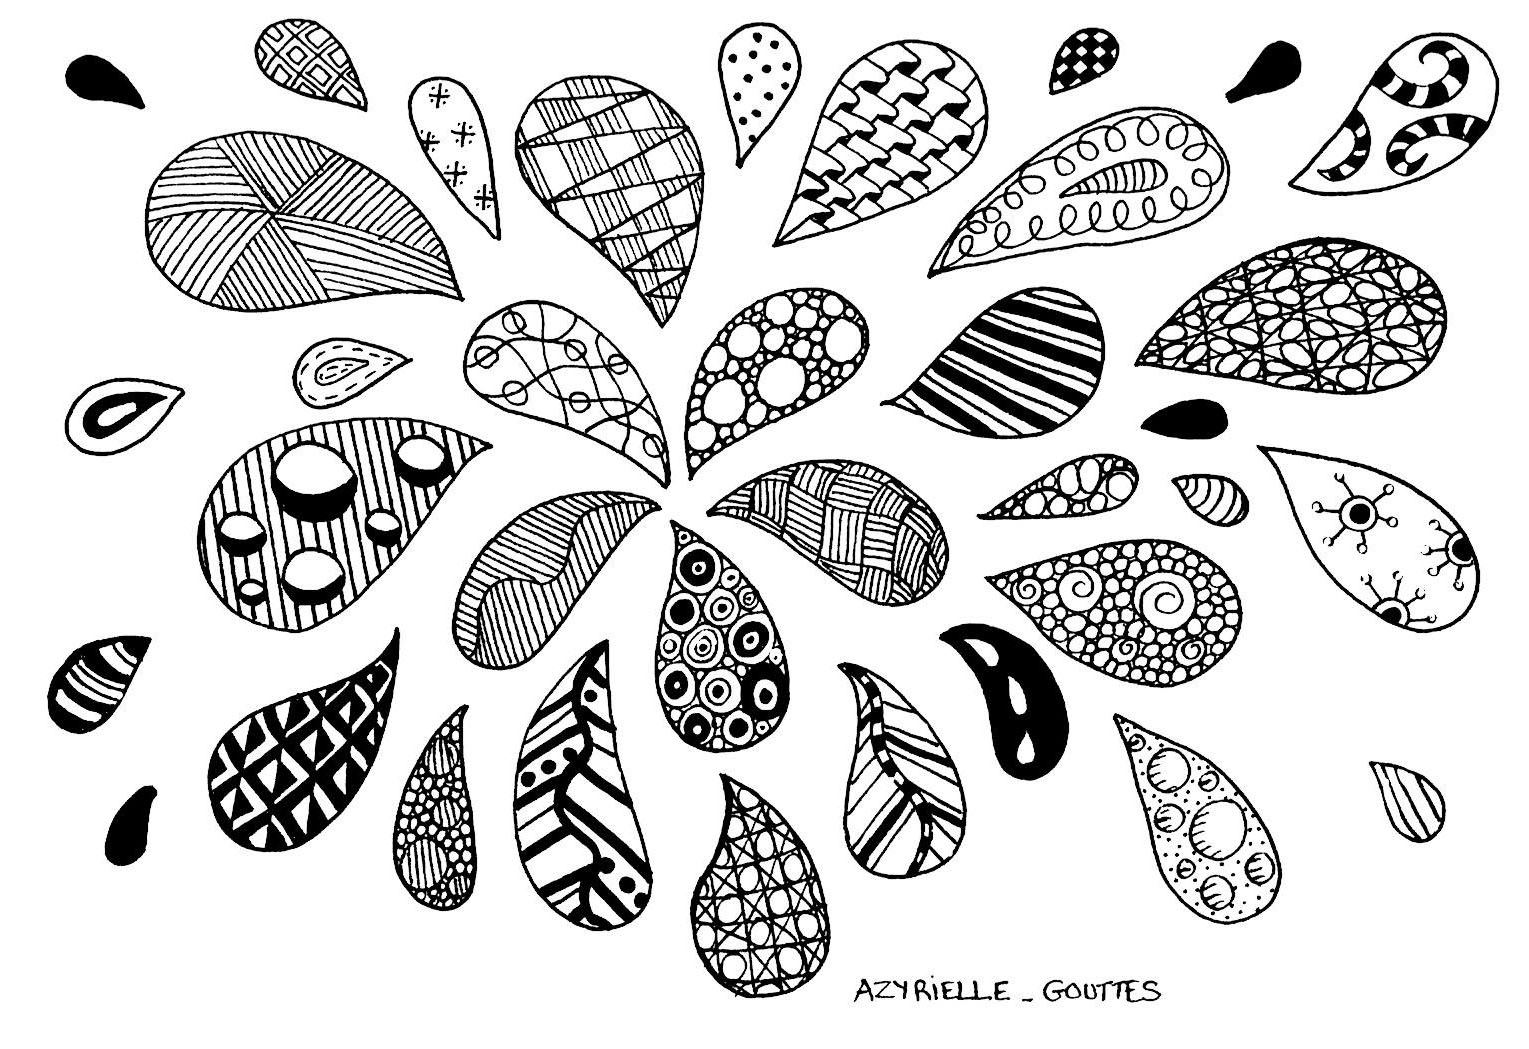 Coloring pages for adults zentangle - Zentangle Drops From The Gallery Zentangle Artist Azyrielle